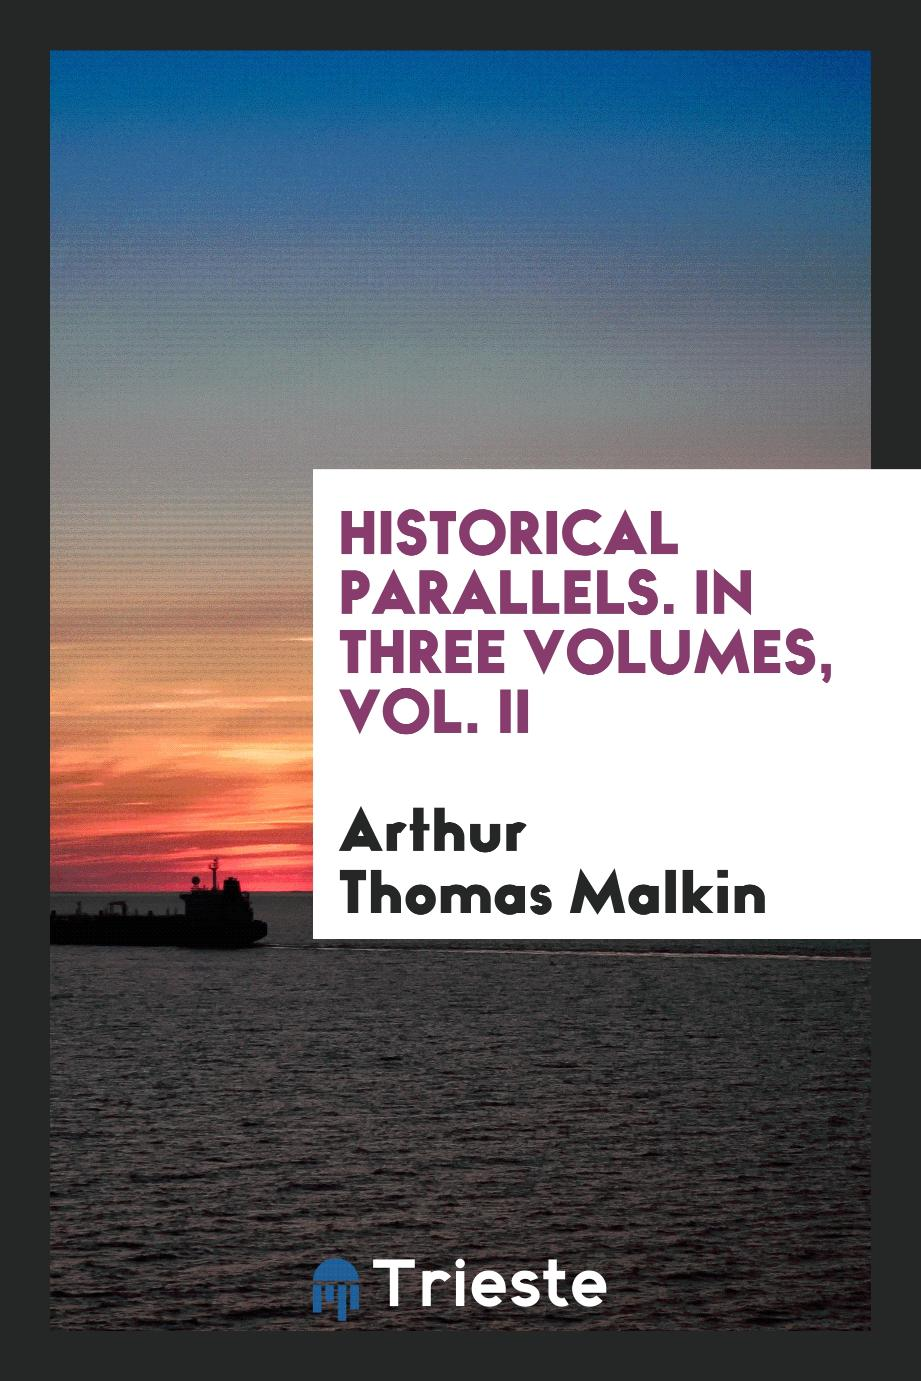 Historical parallels. In three volumes, Vol. II